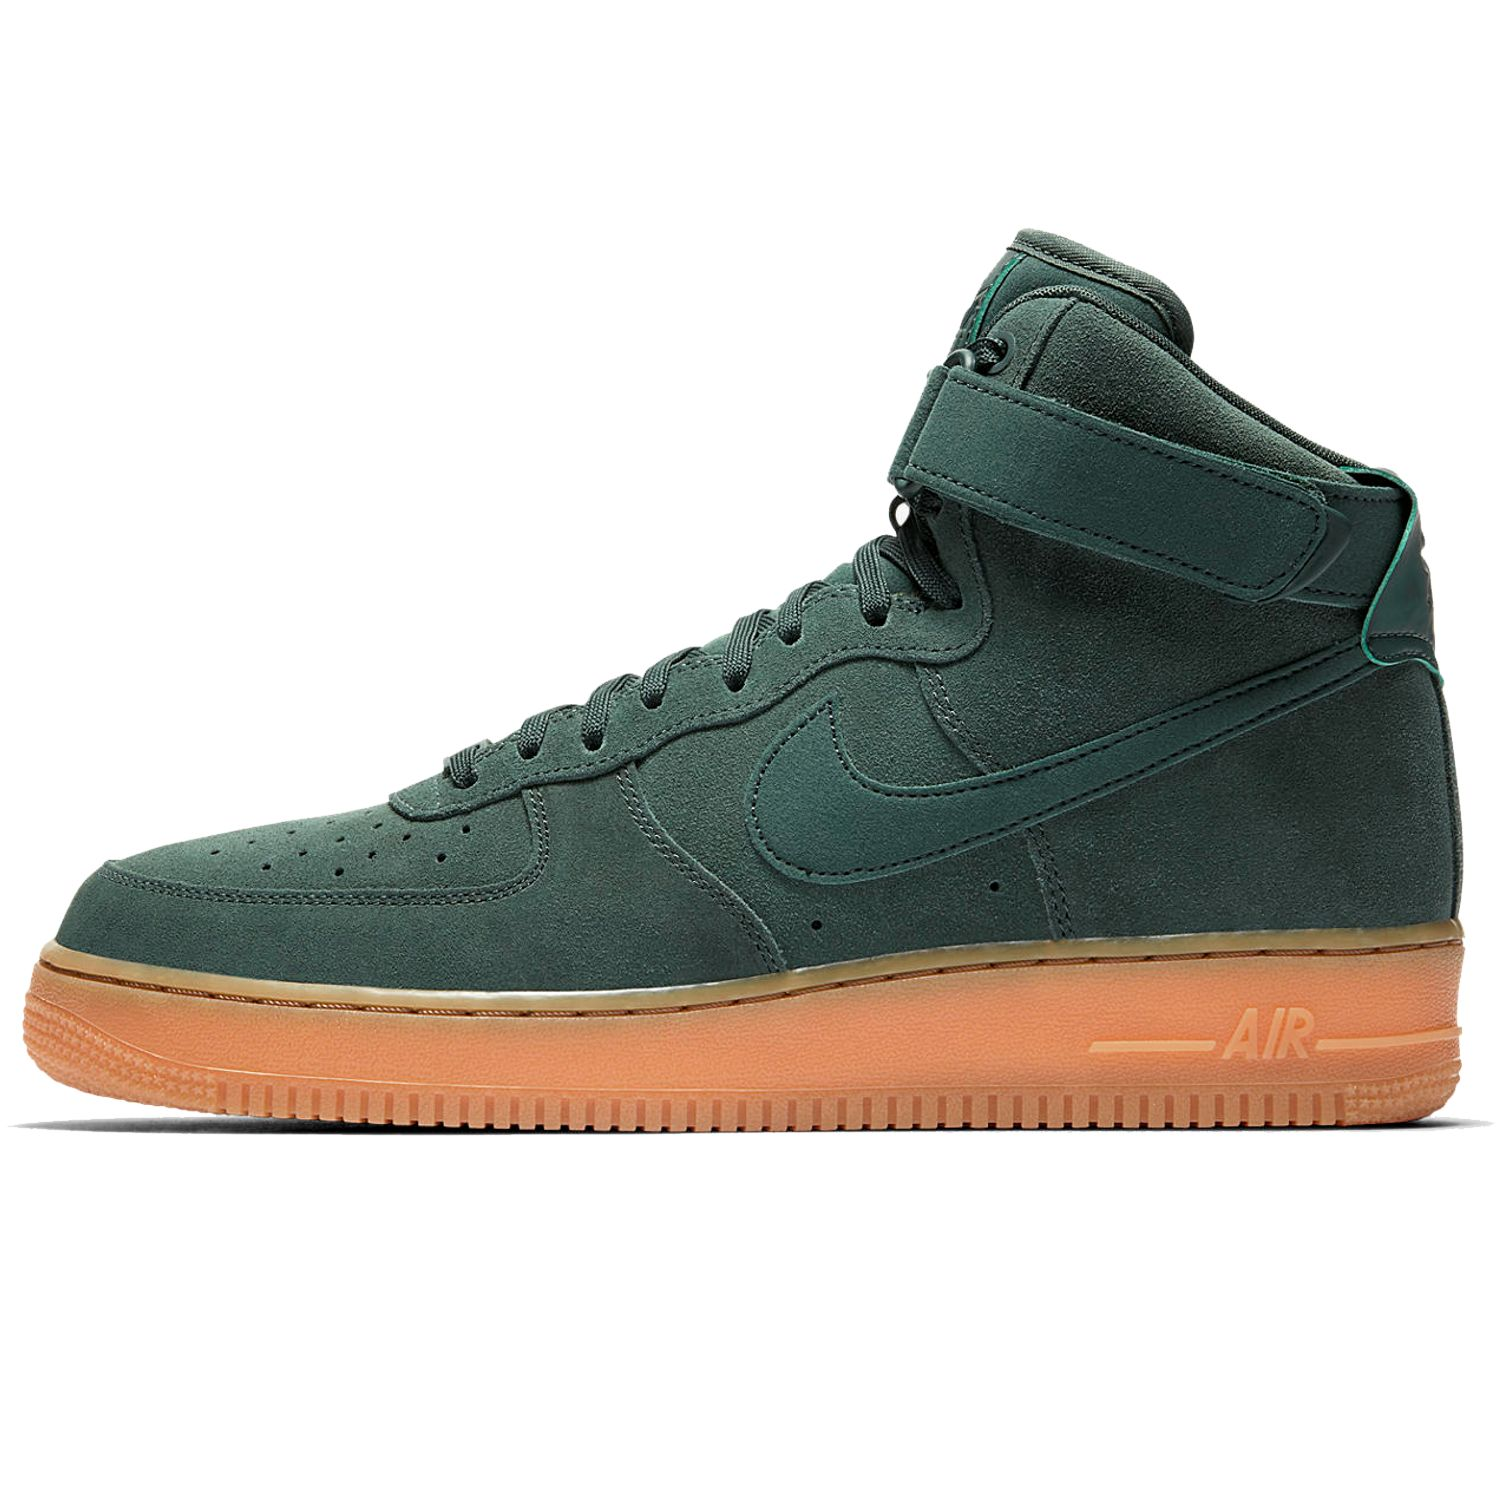 big sale 9db66 b3be9 ... BUTY MĘSKIE NIKE AIR FORCE 1 HIGH 07 LV8 AA1118-300 ...